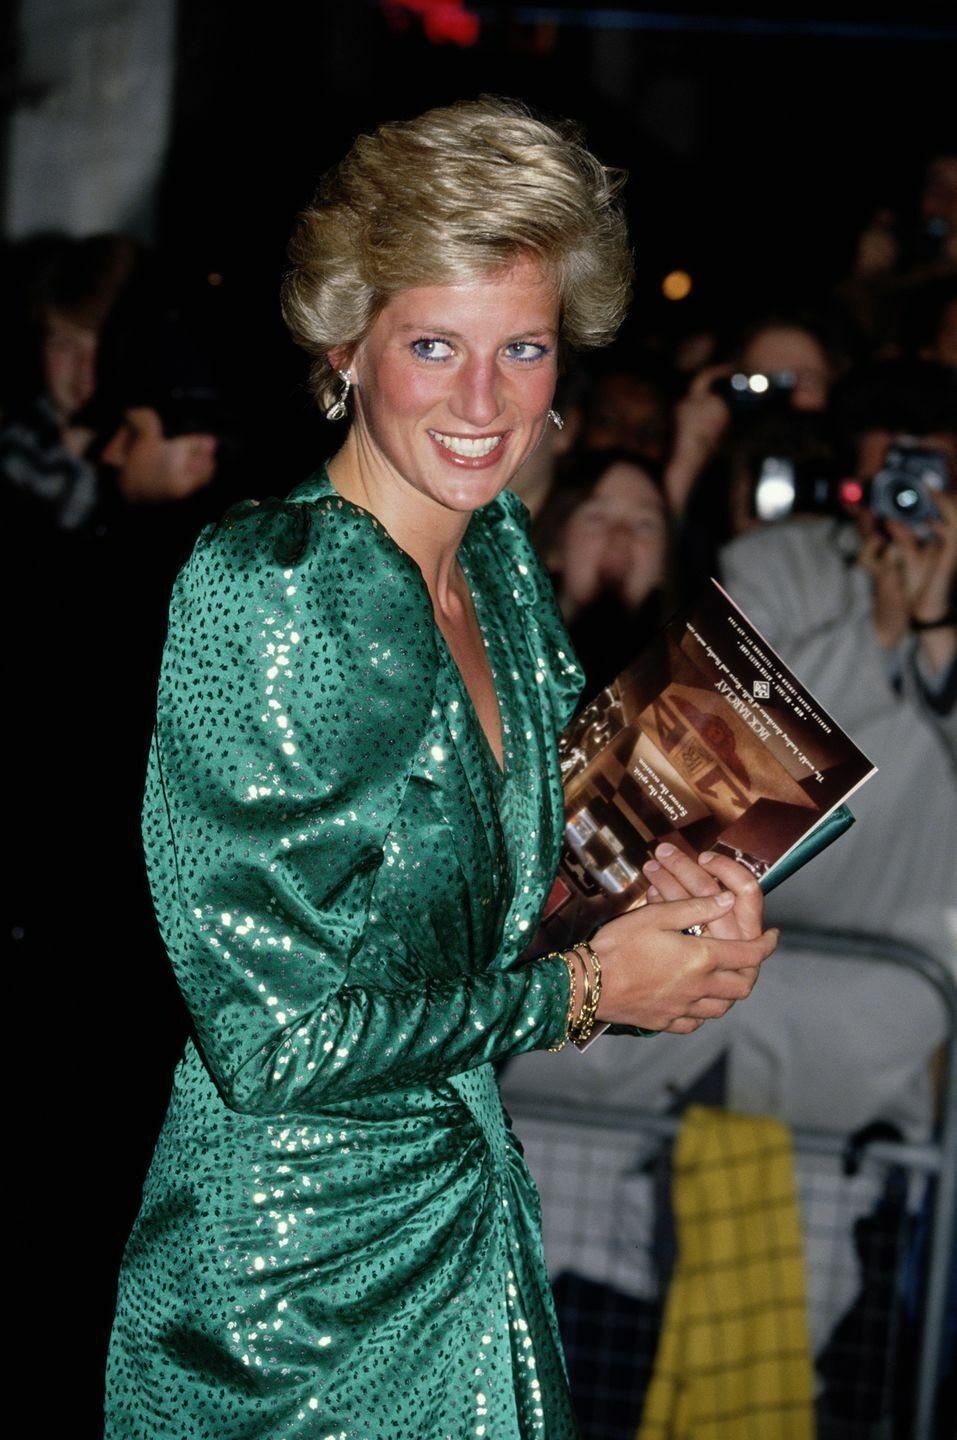 <p>Diana dazzles in a green frock.</p>